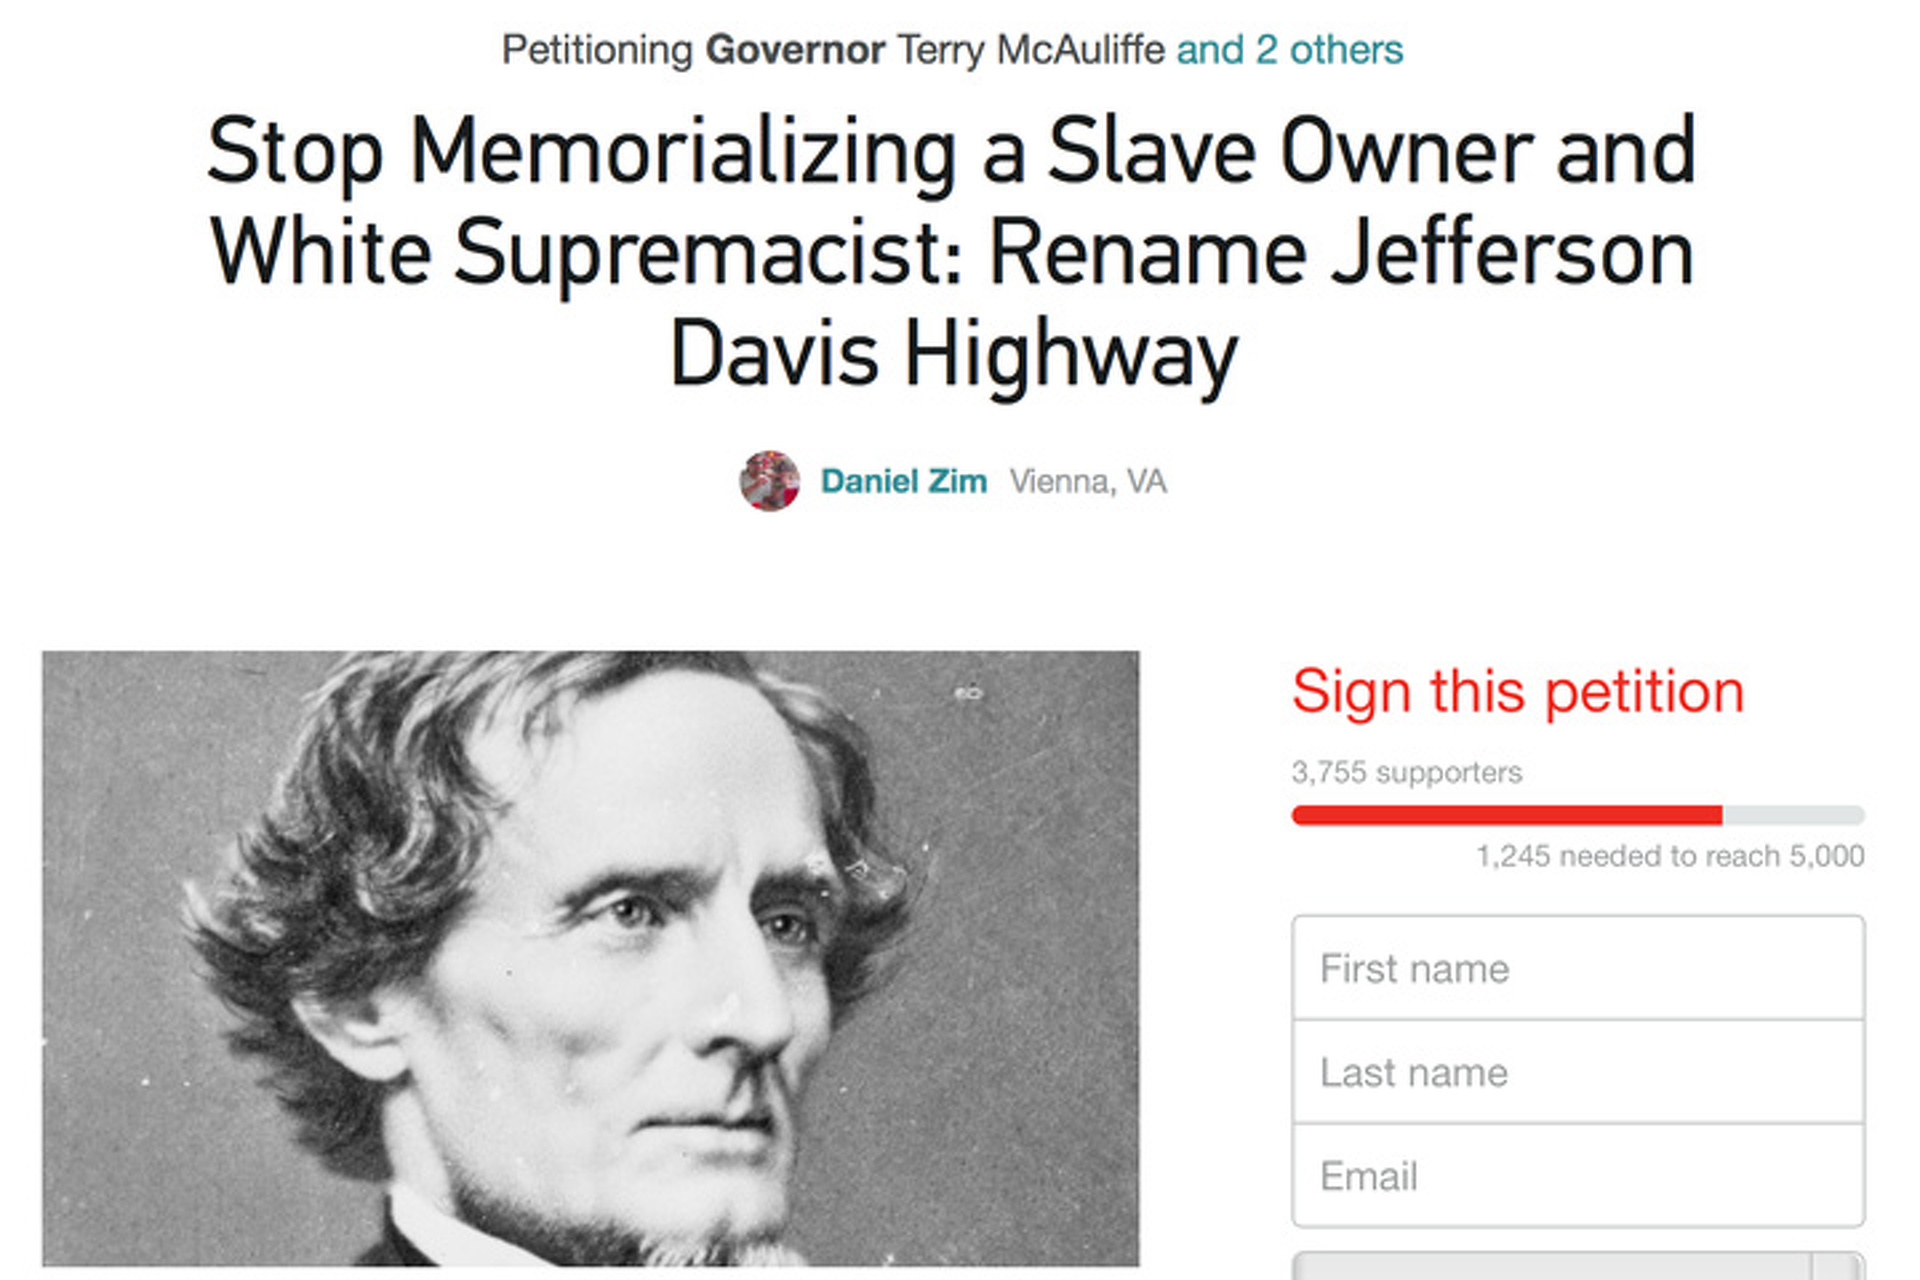 Petition Aims to Rename Virginia's Jefferson Davis Highway